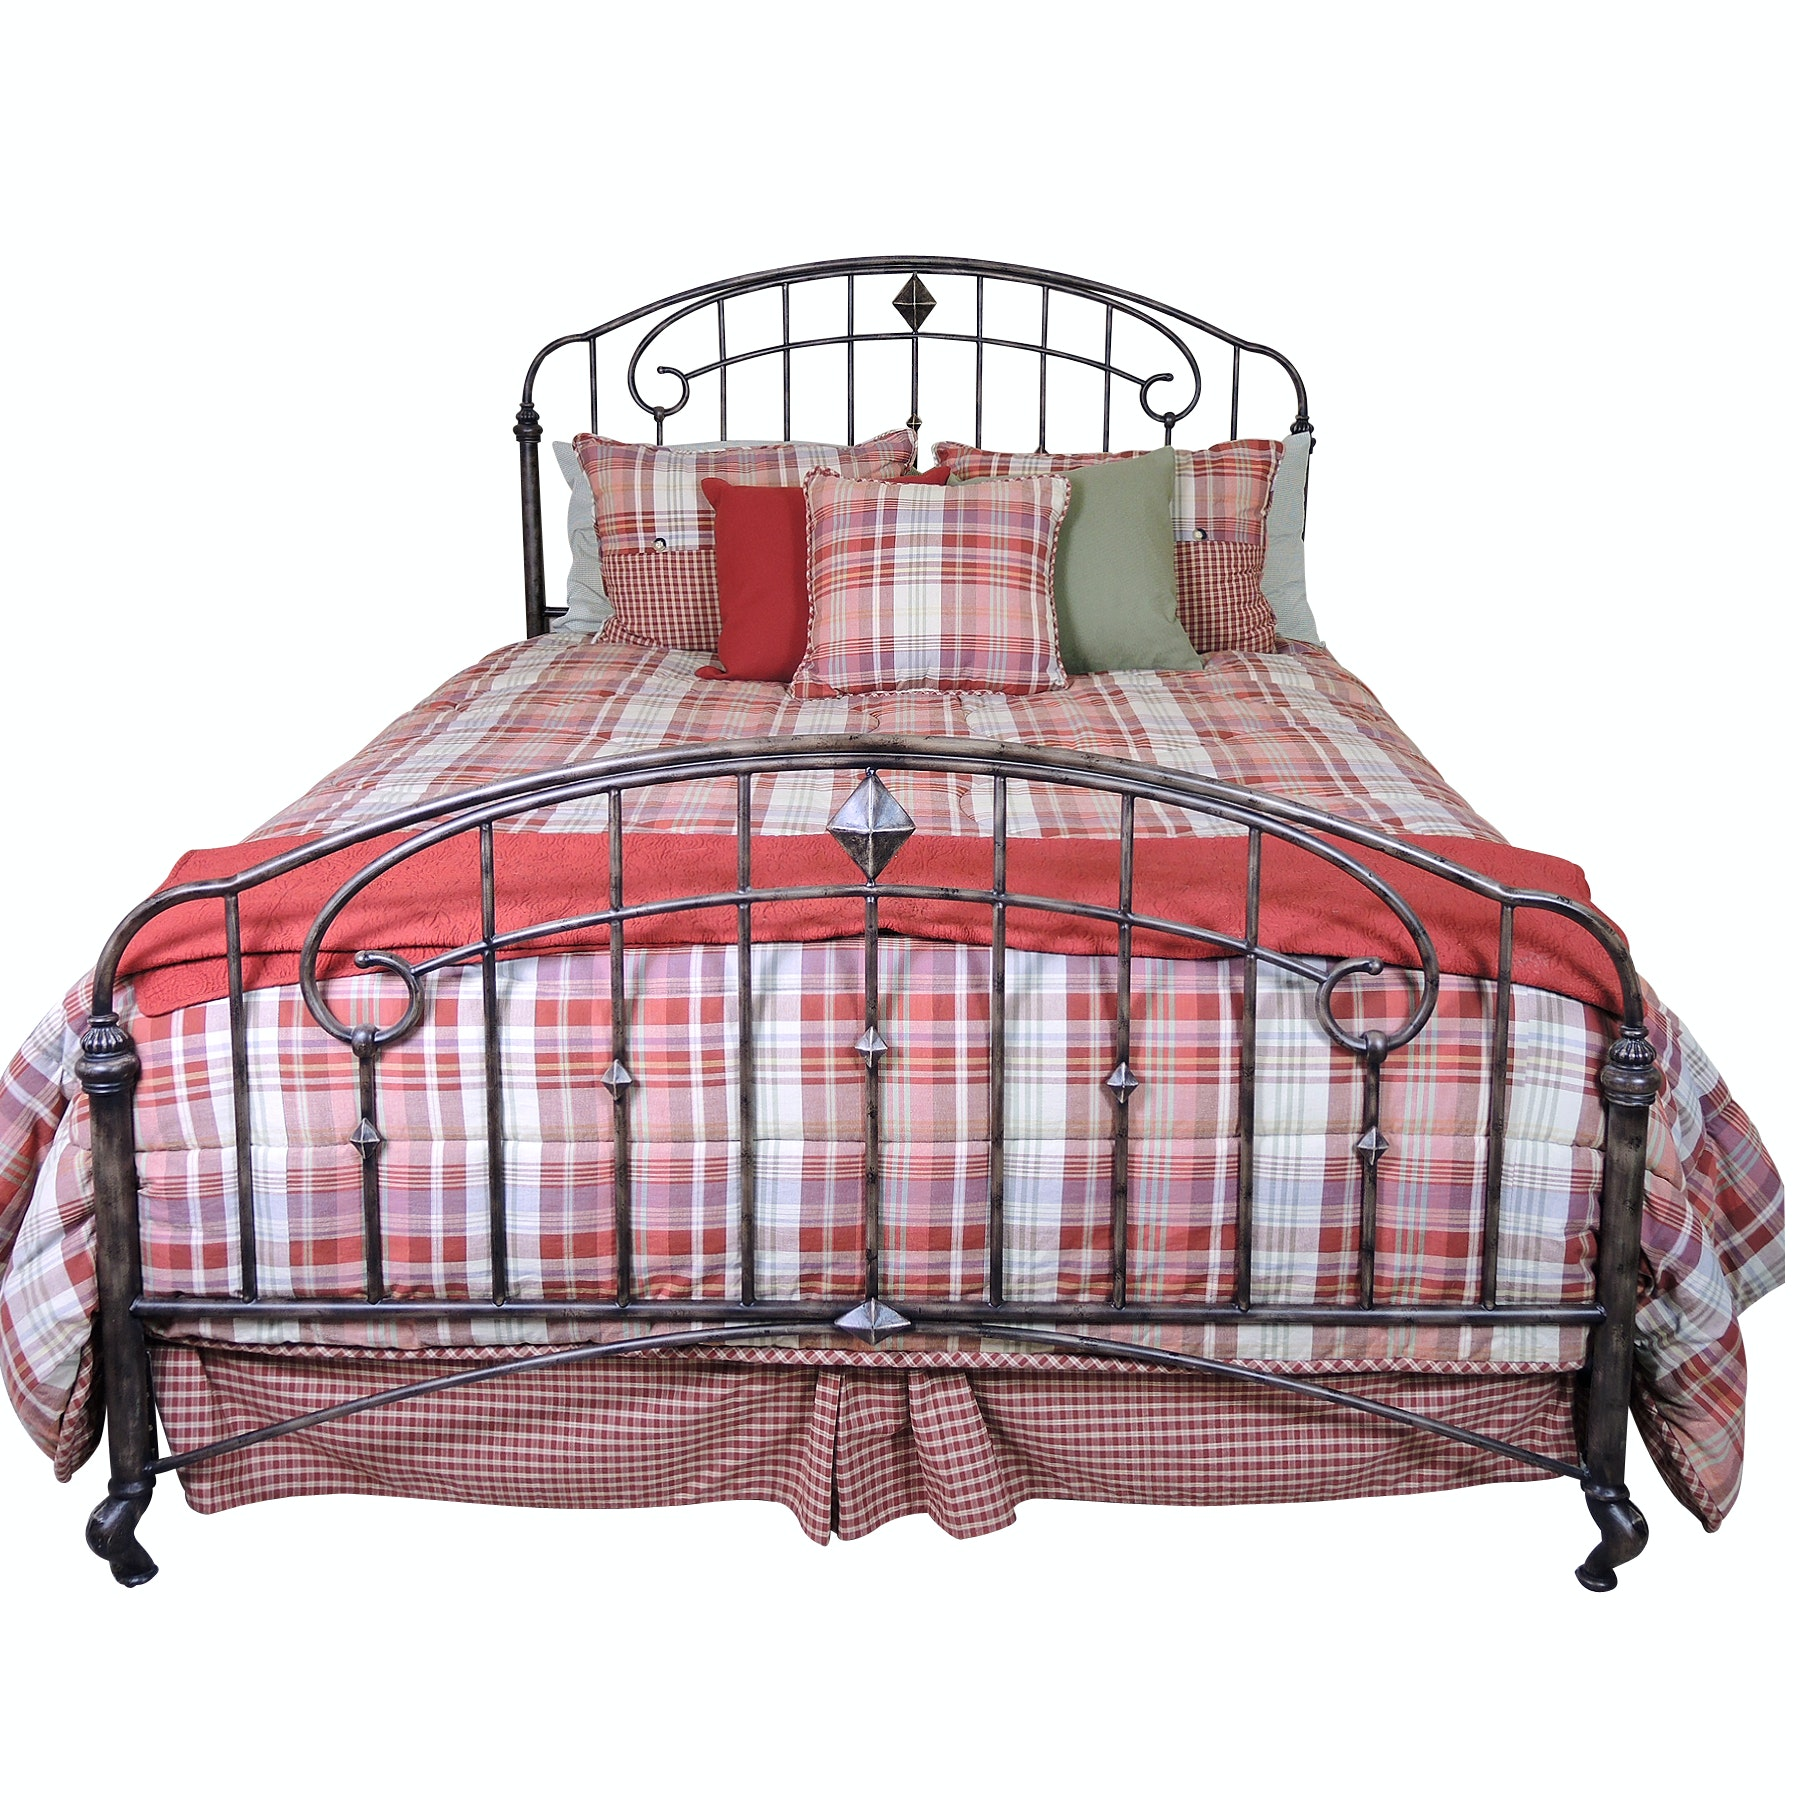 Metal Queen Size Bed Frame and Bedding